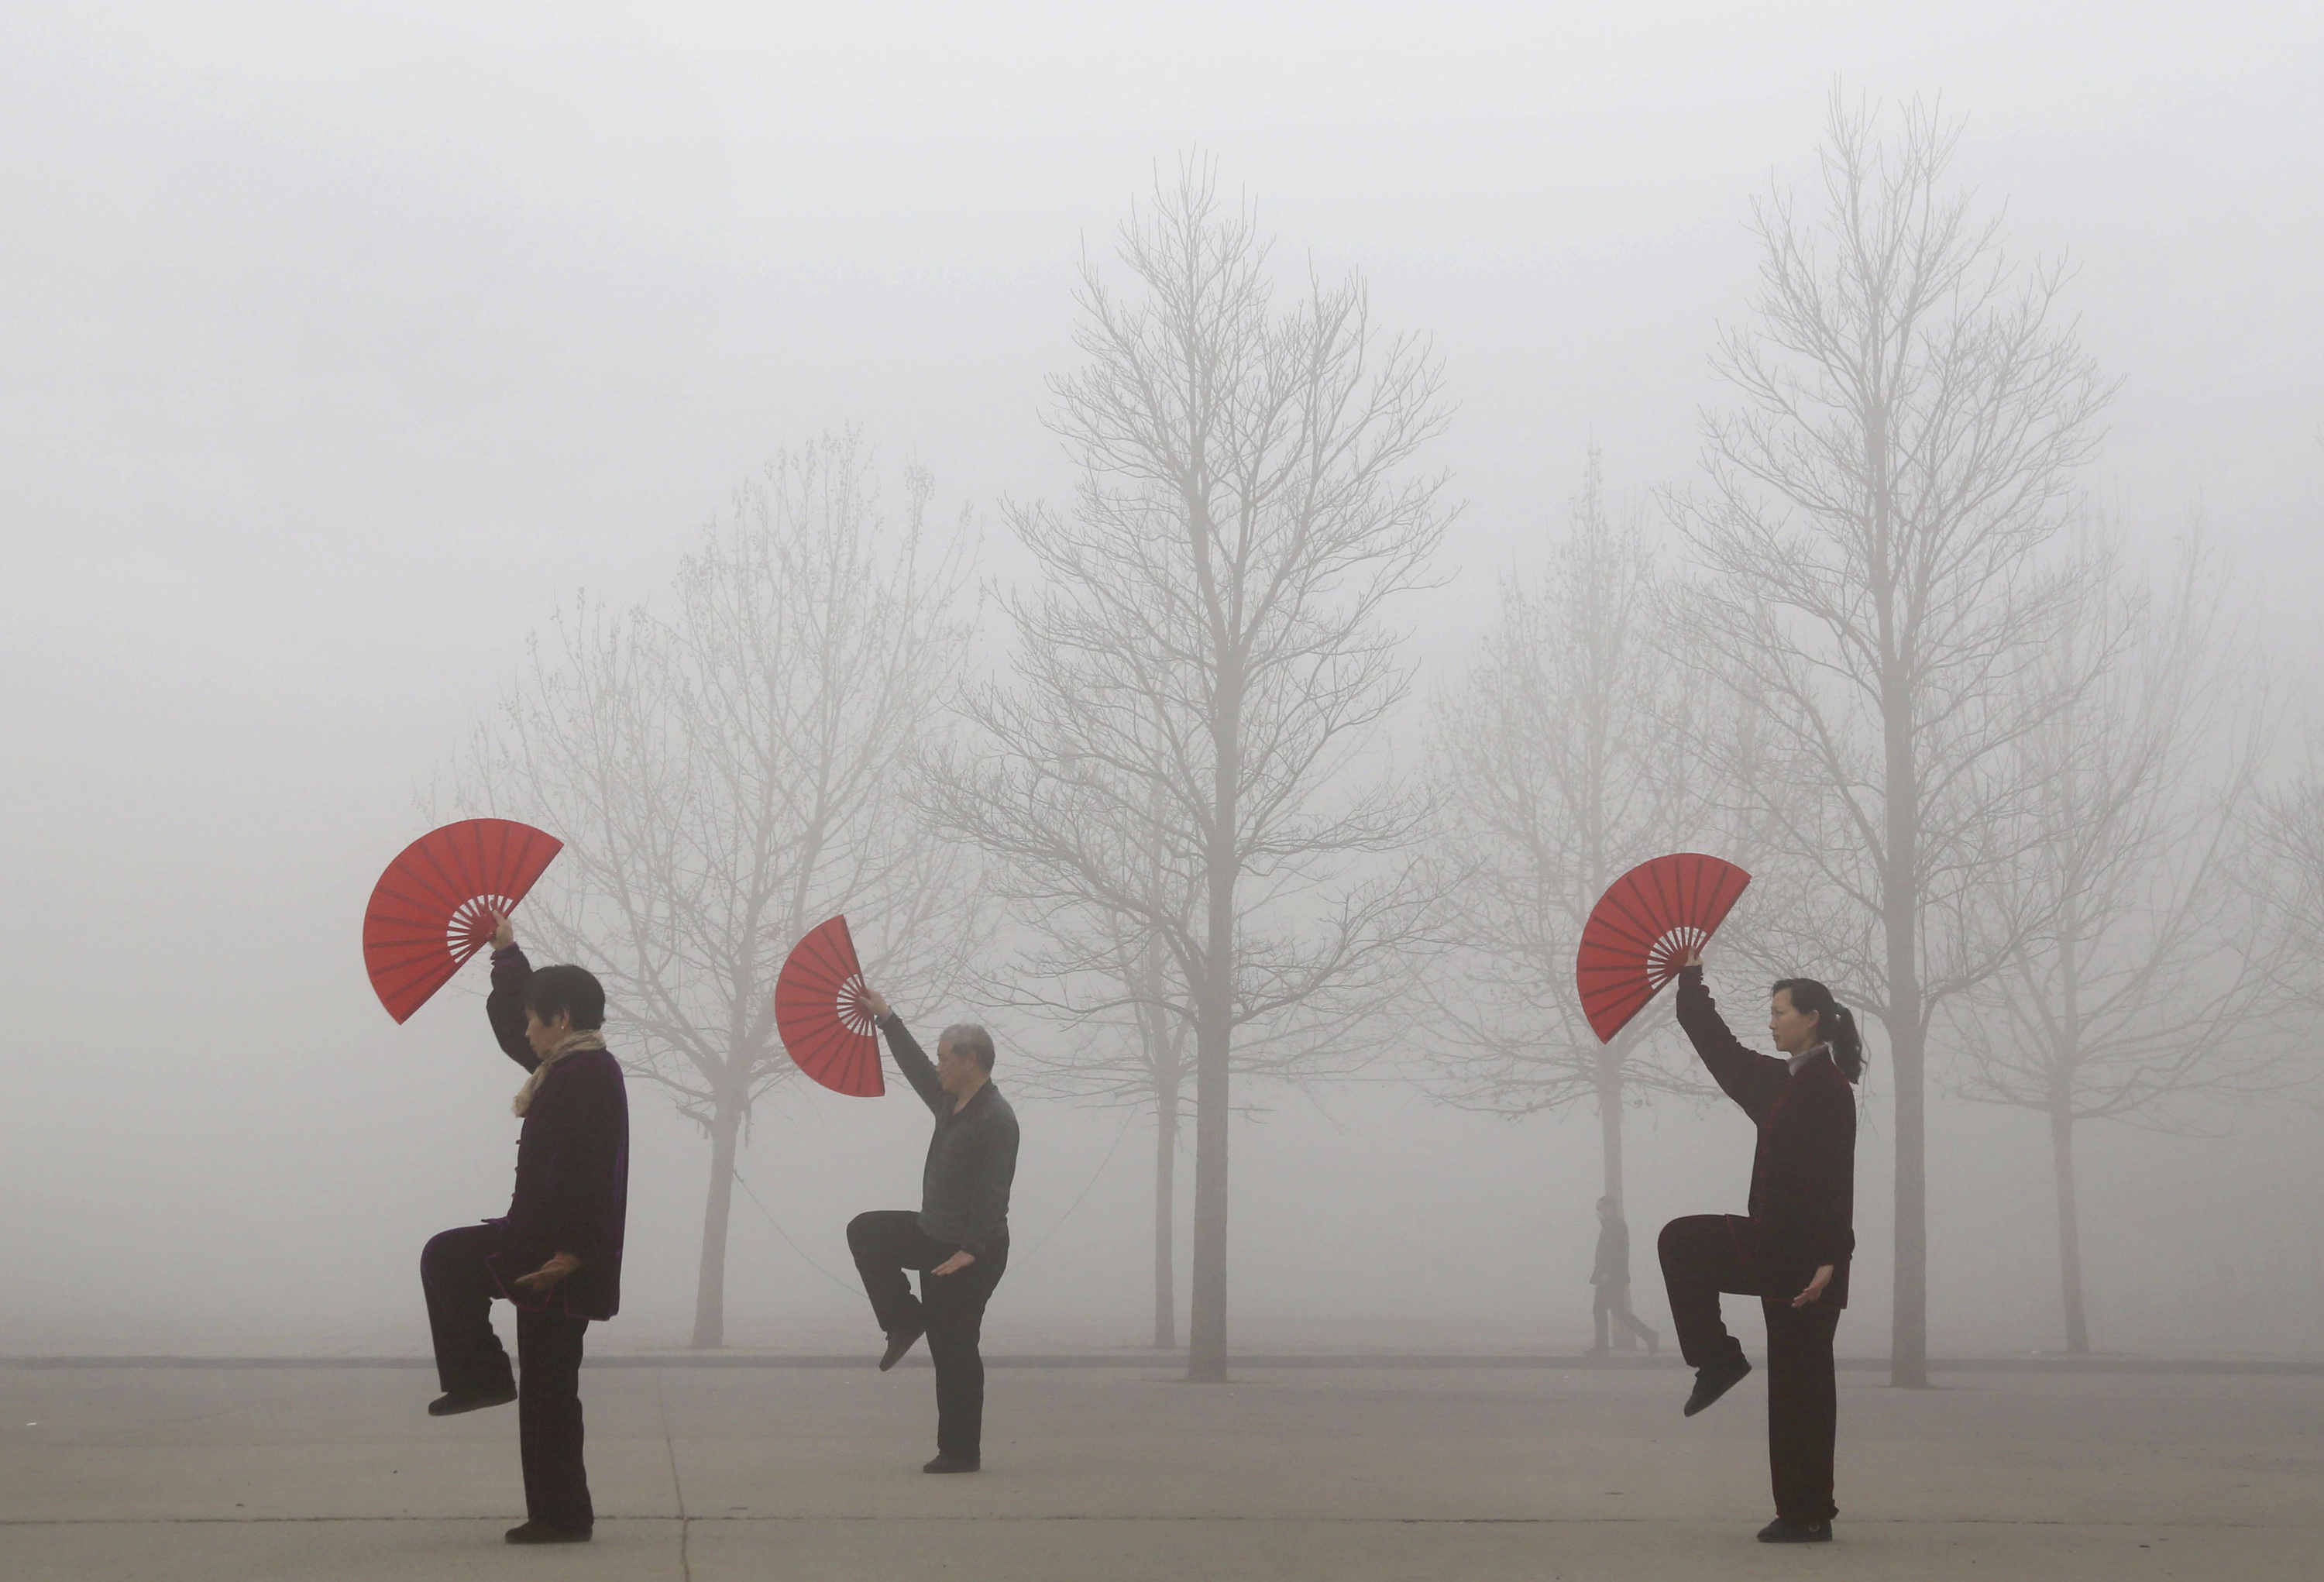 People do morning exercises on a polluted day in Jiaozuo, Henan province, China, on March 16, 2015